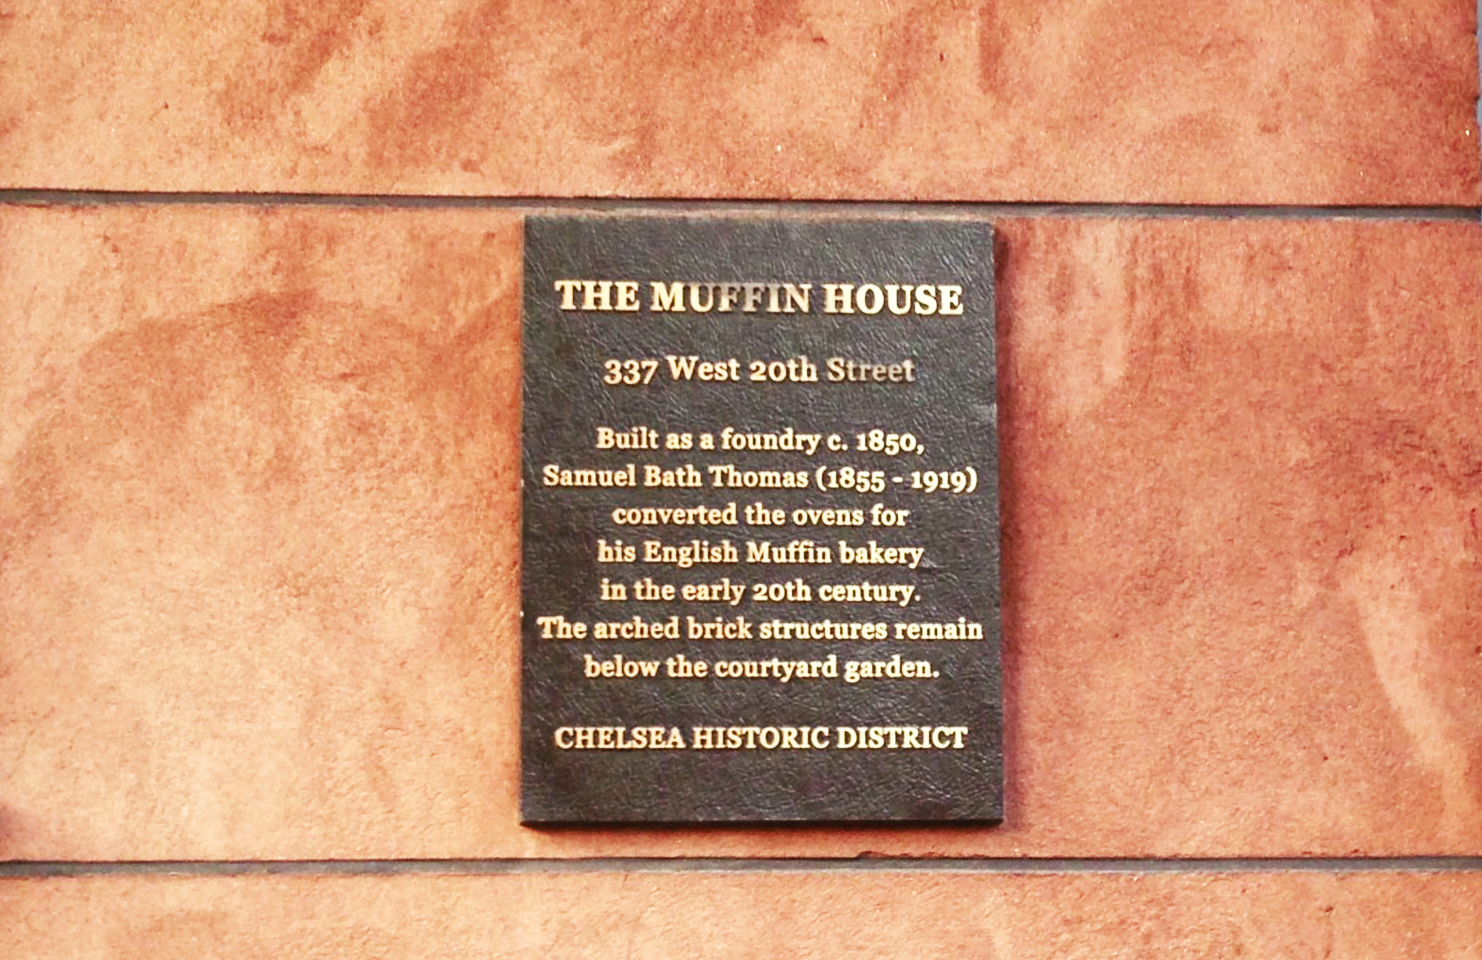 the muffin house nyc